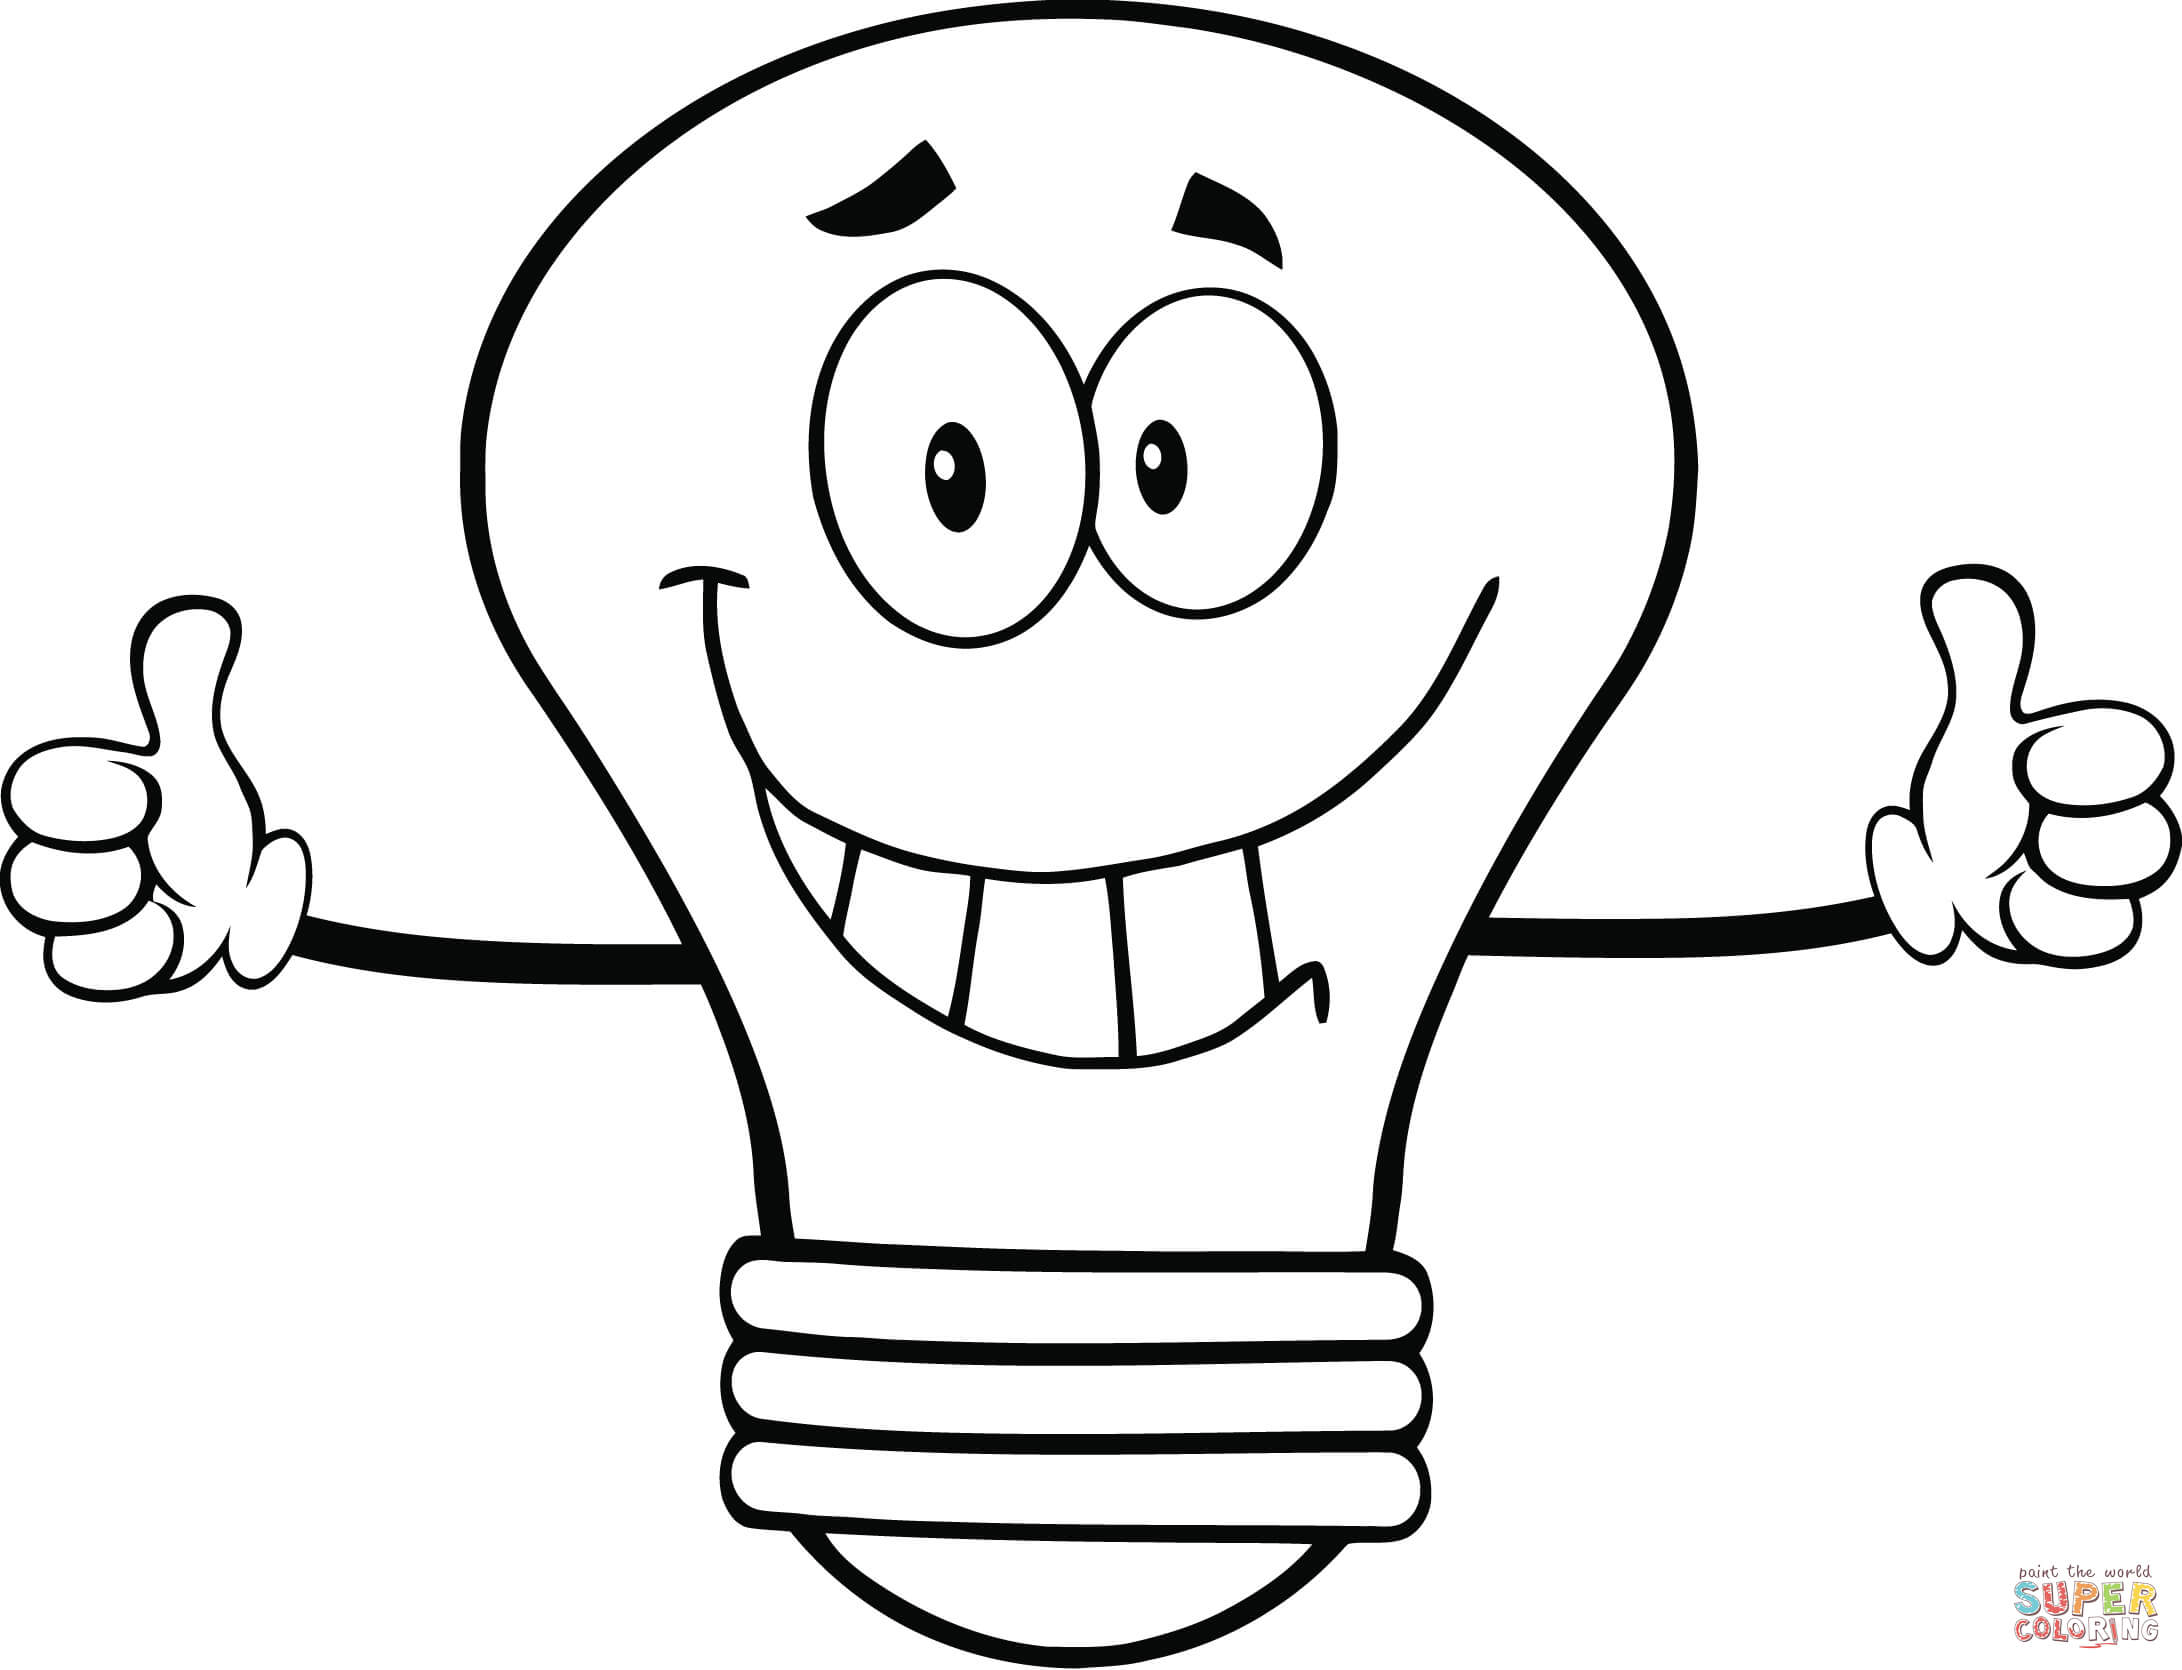 Light Bulb coloring page | Free Printable Coloring Pages